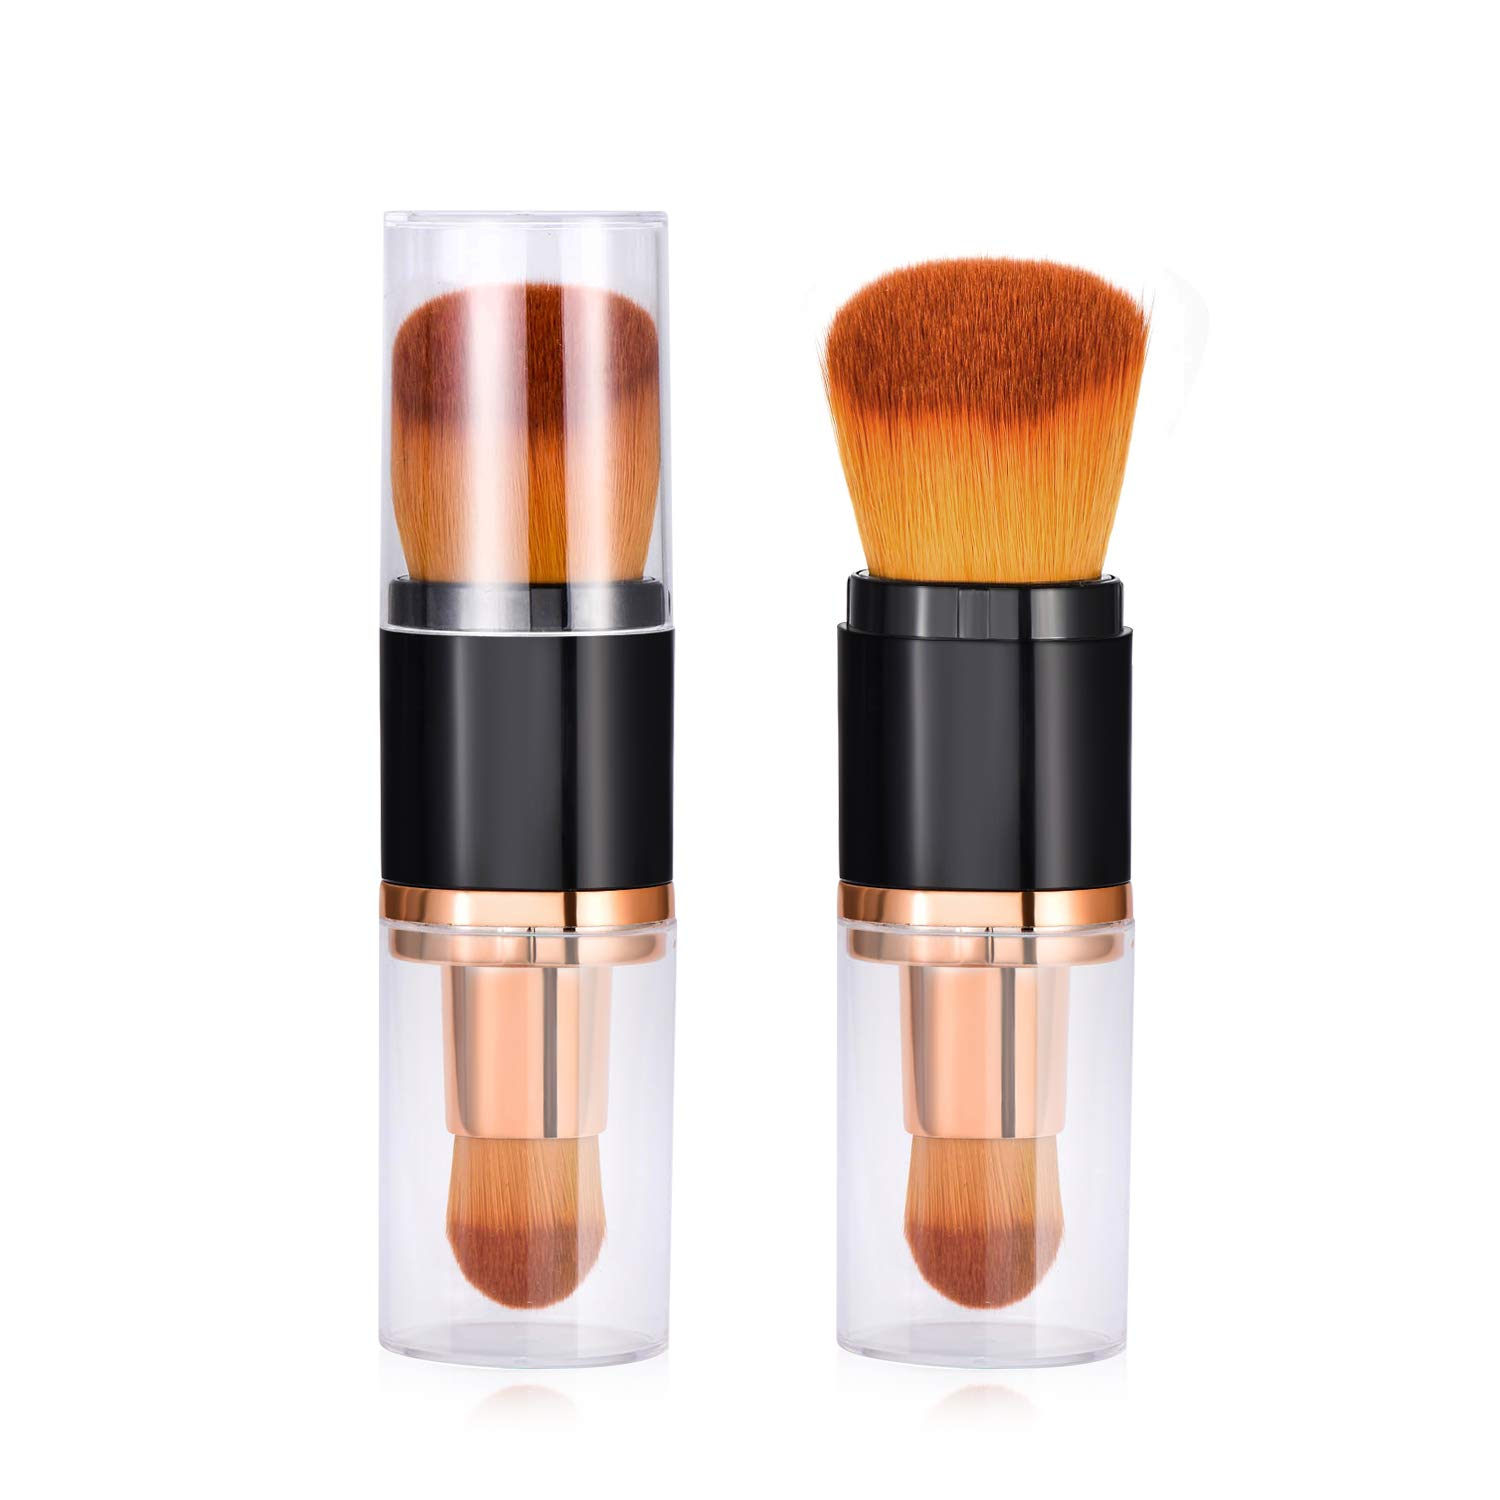 Dual Ended Oval Makeup Brush - Premium Foundation Brushes, Kabuki Brushes, Blush Brushes, Contour Brushes, Blending Brushes, Face Brushes for Blending Liquid, Cream or Flawless Powder Cosmetics